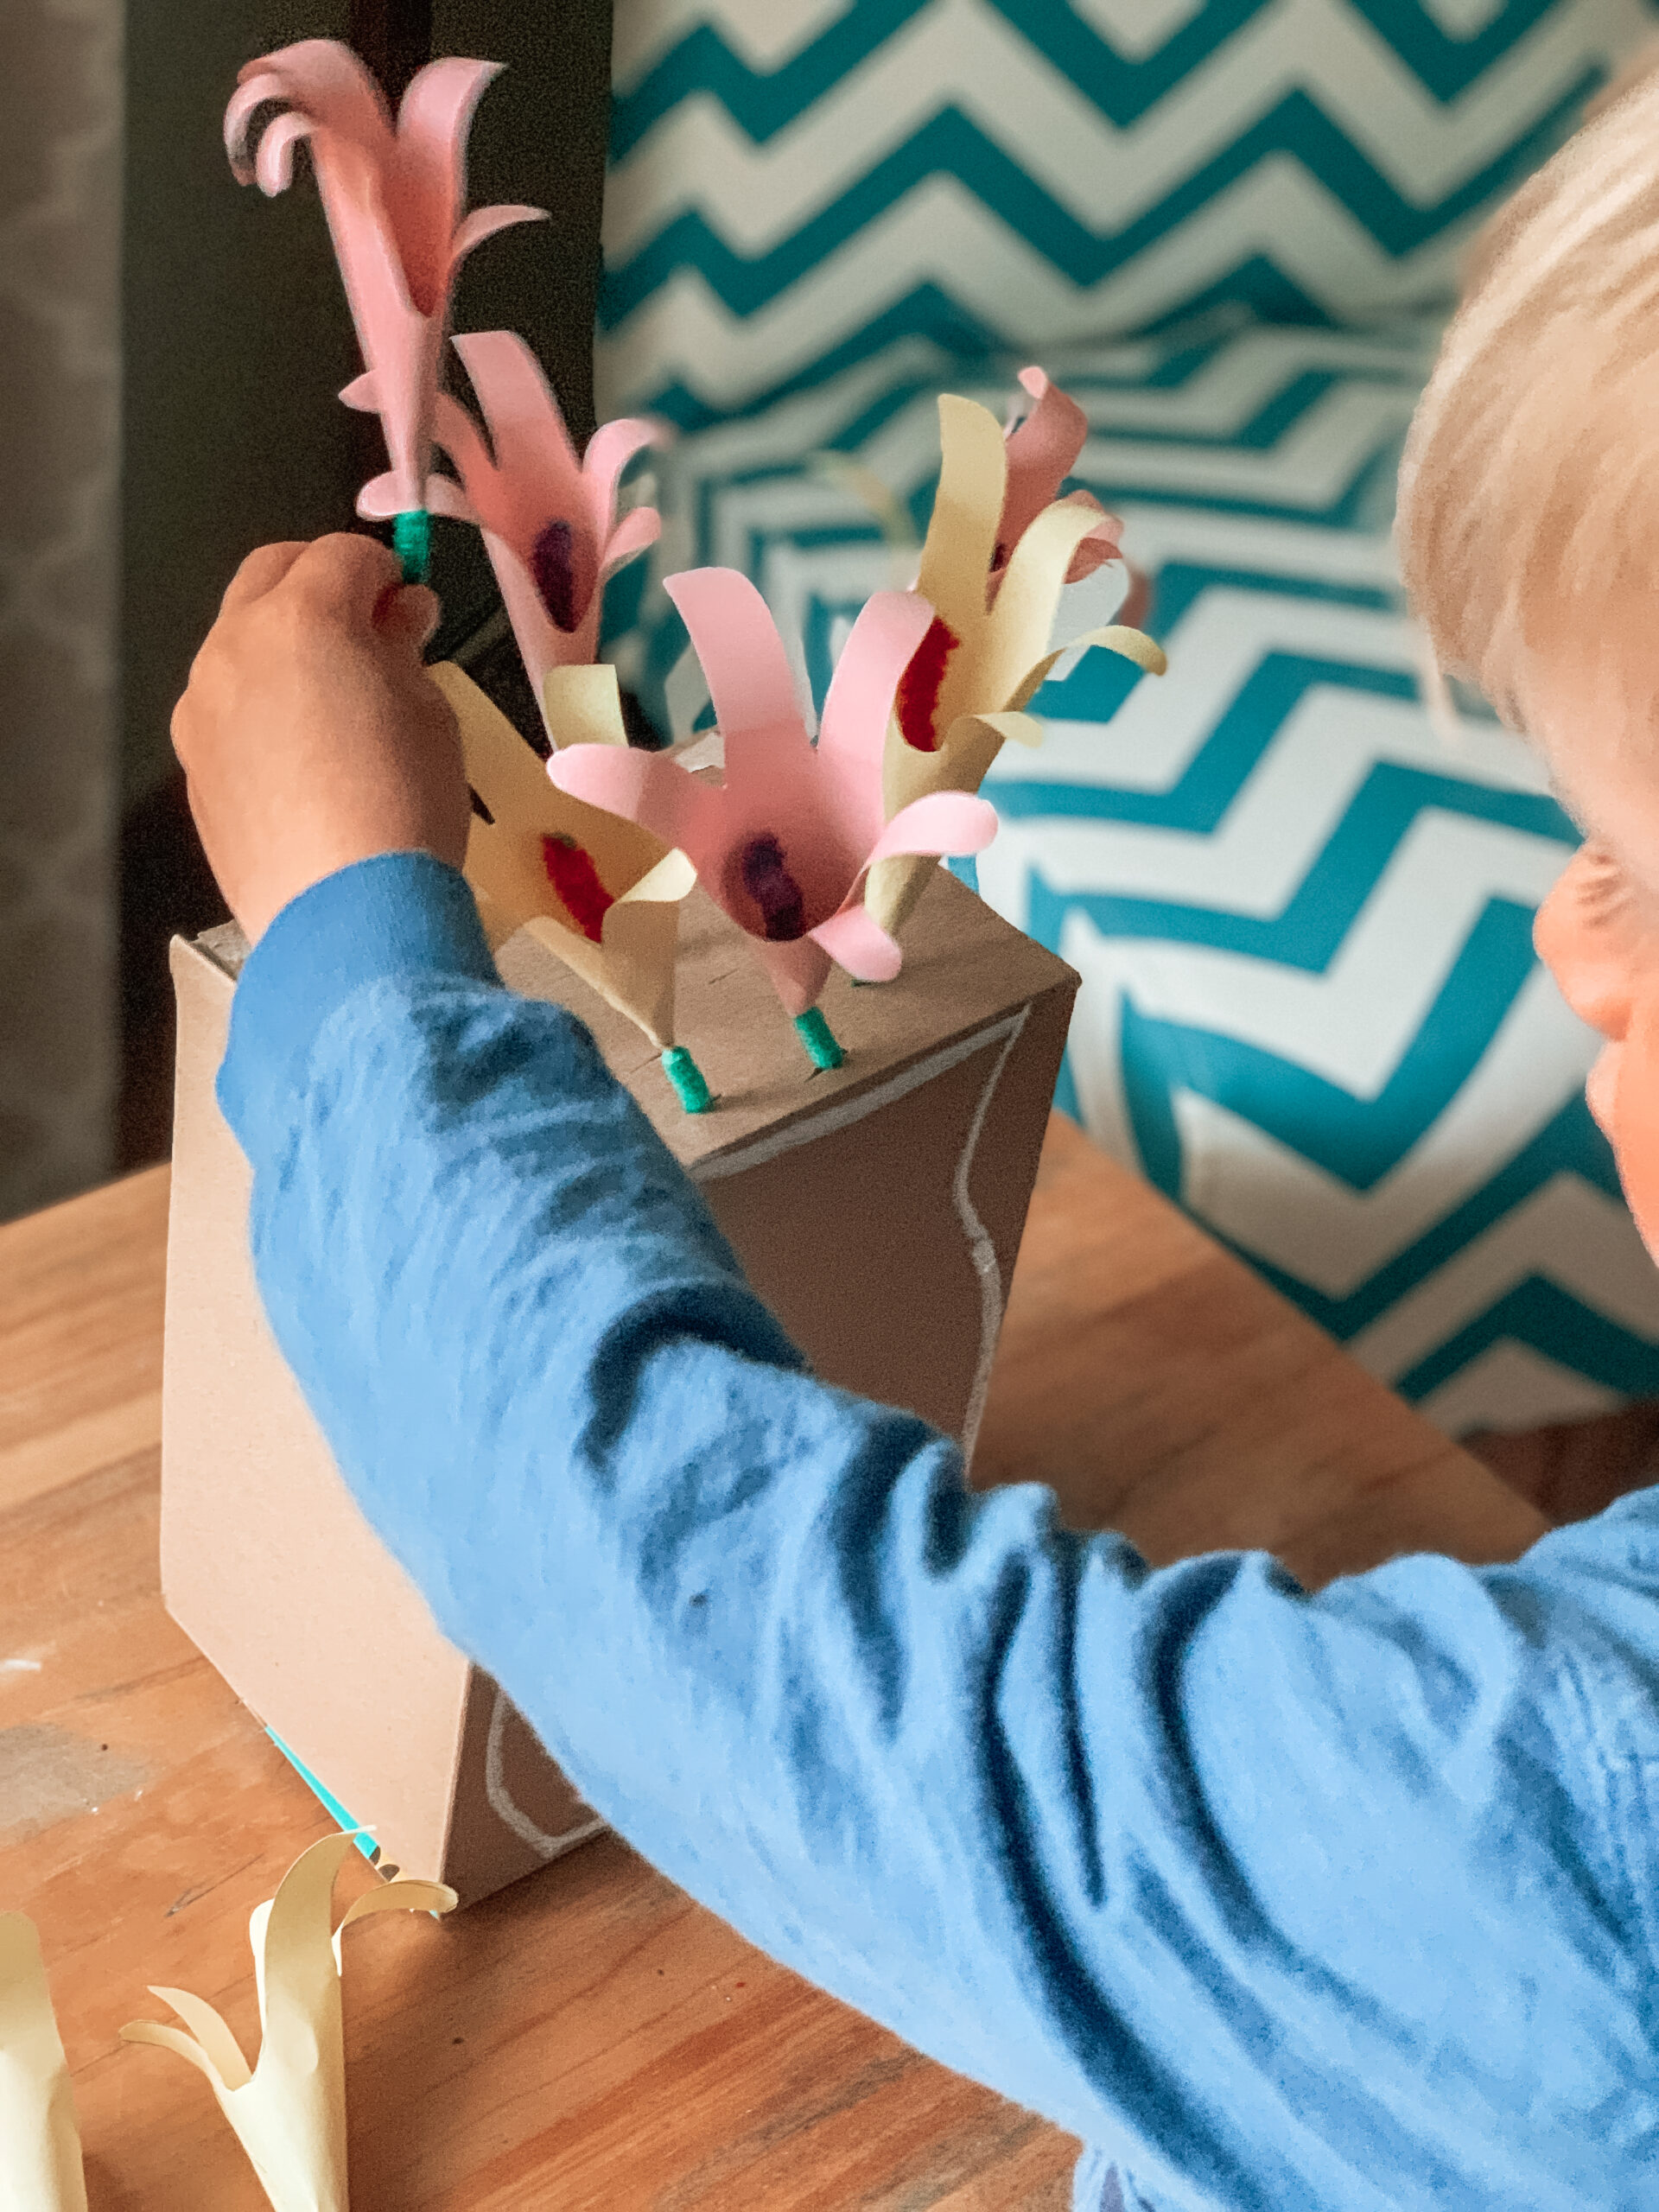 Flower arranging activity and craft for kids